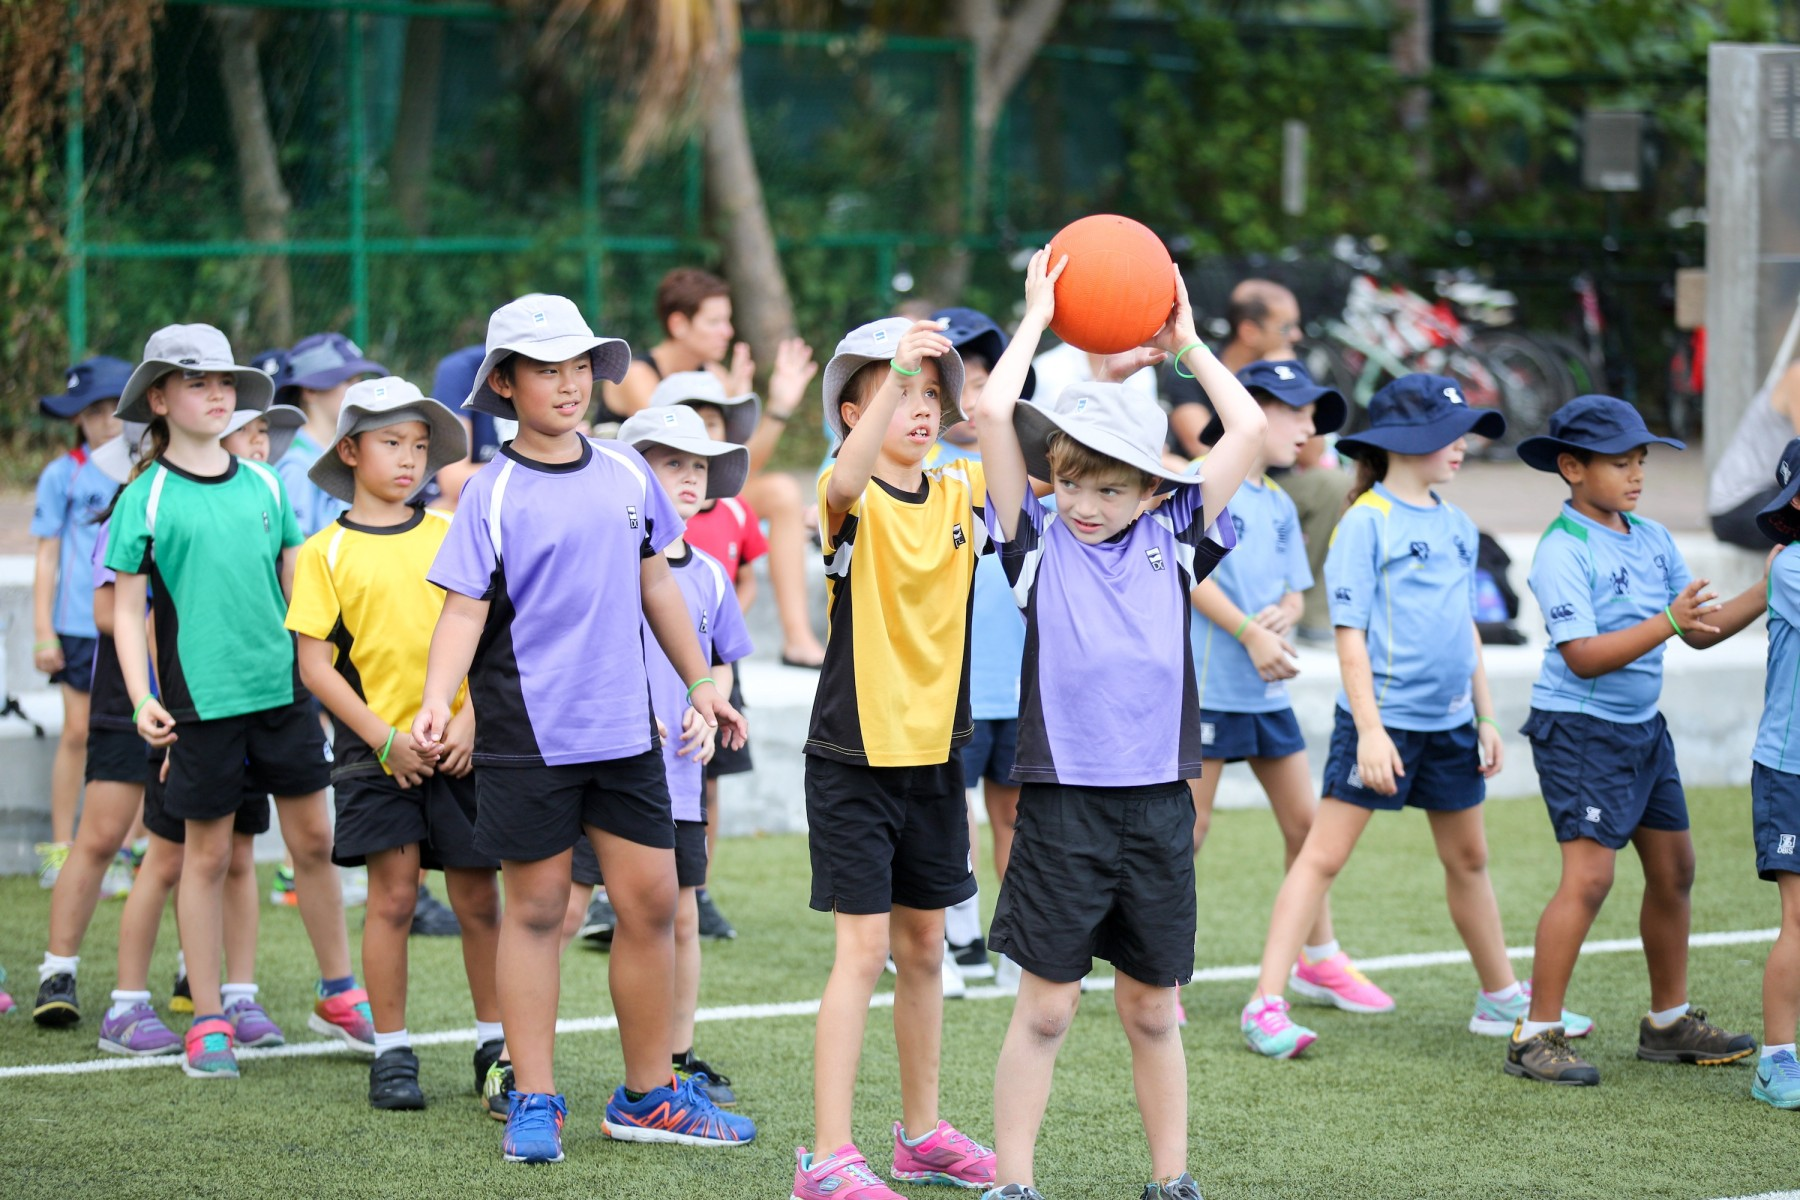 sports event in school Back to school /2018 mega sports (the real aau)  one of the largest, non -profit, volunteer, multi-sport event organizations in the world, the aau is.